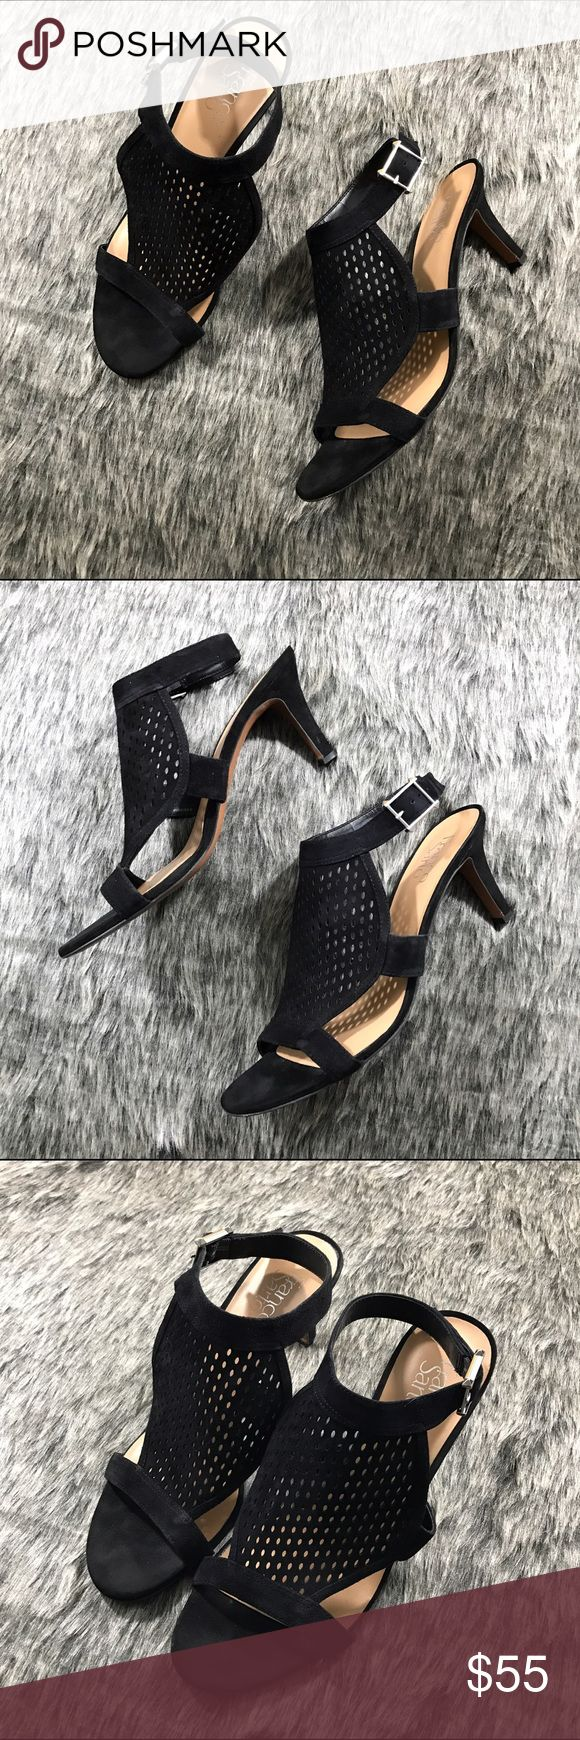 FRANKO SARTO Leather Heels Excellent condition, hardly worn! Lovely caged detail. Franko Sarto Shoes Heels